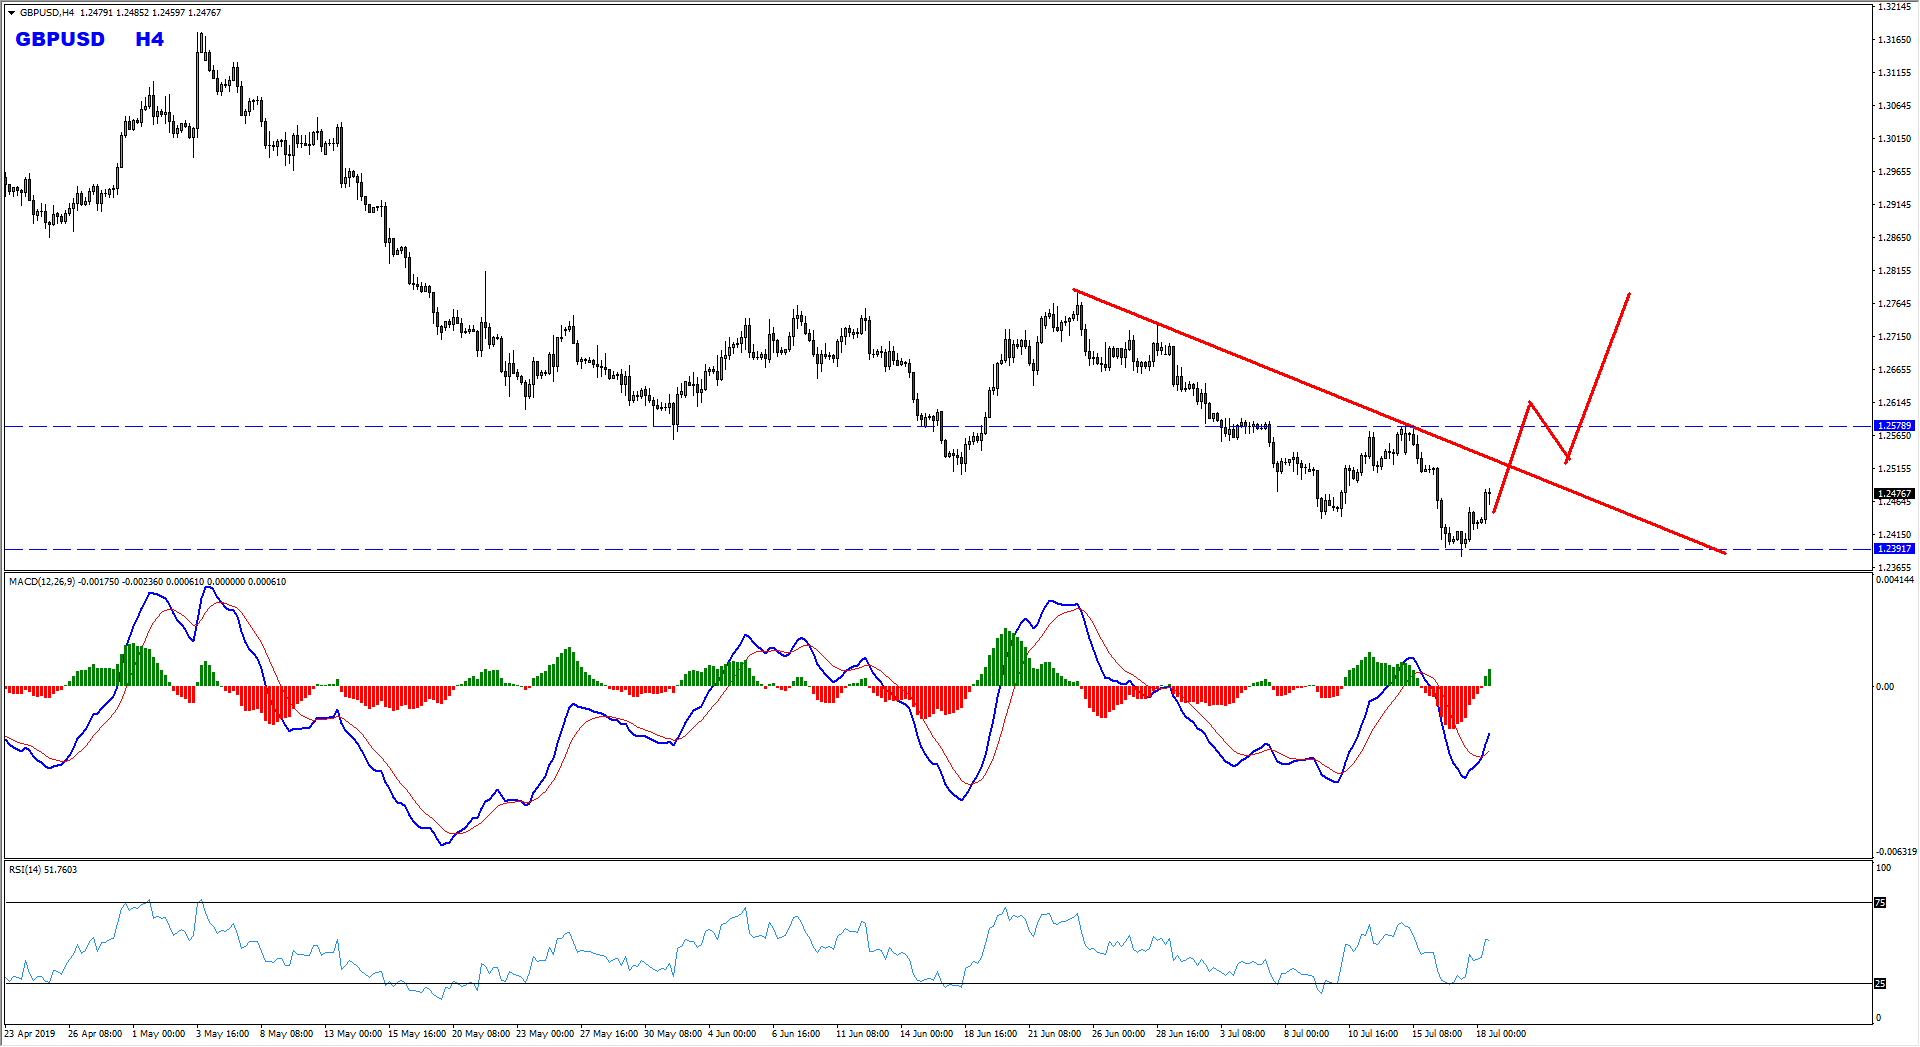 GBPUSD Buy Setup Forming At The Moment